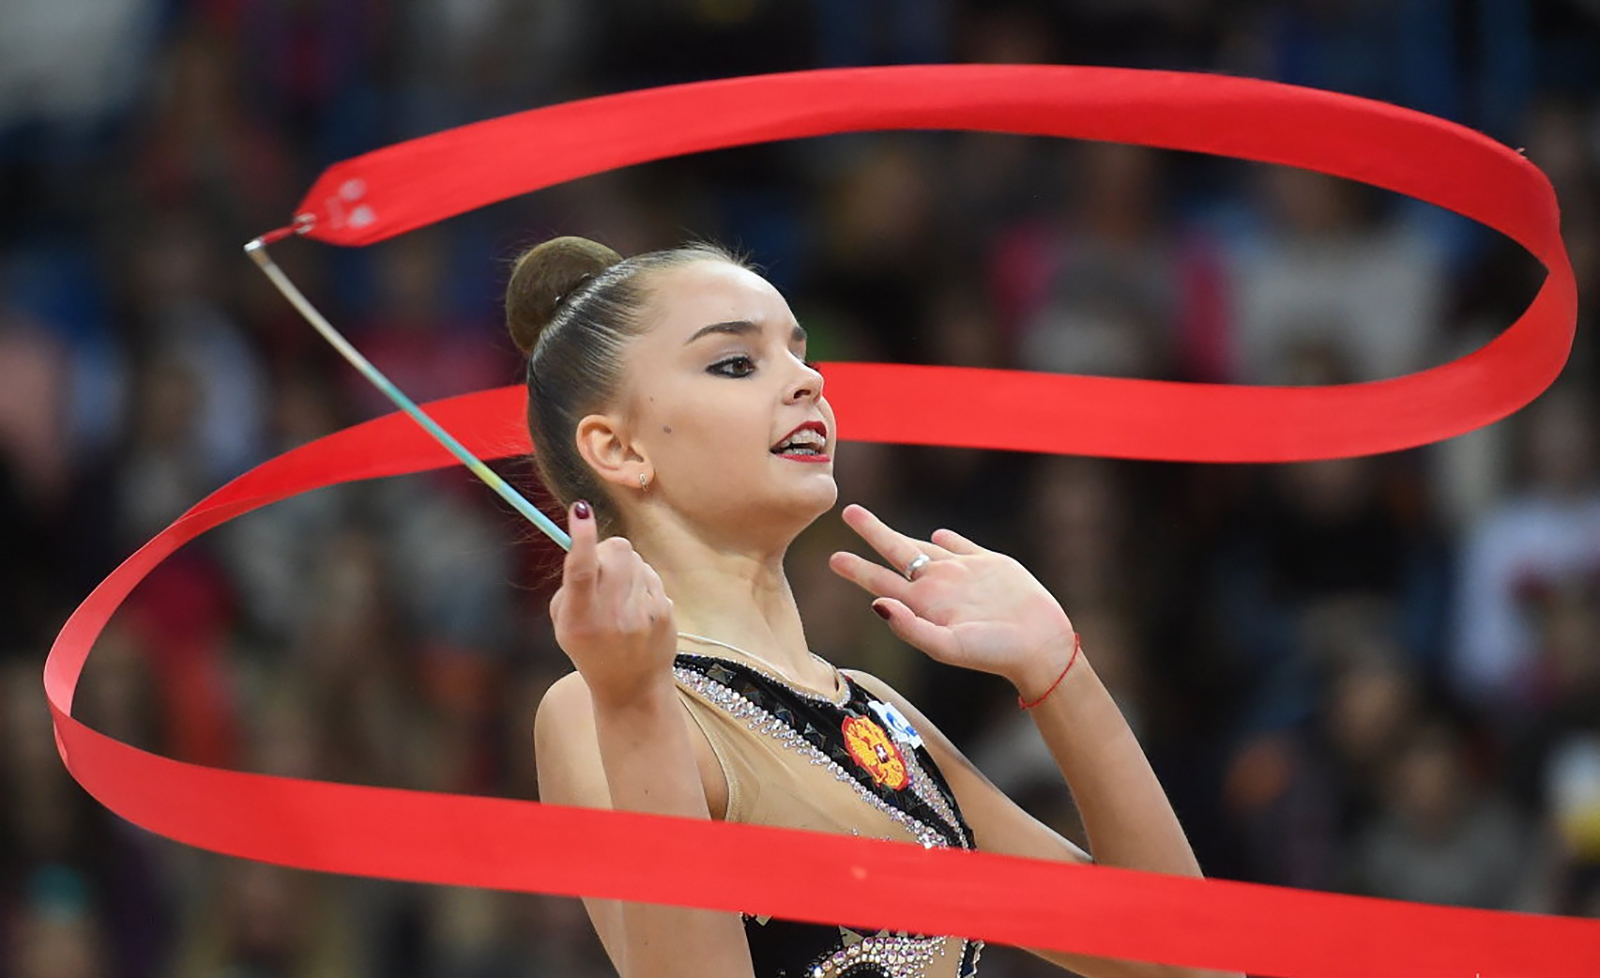 Dina Averina pode igualar marca história em Baku